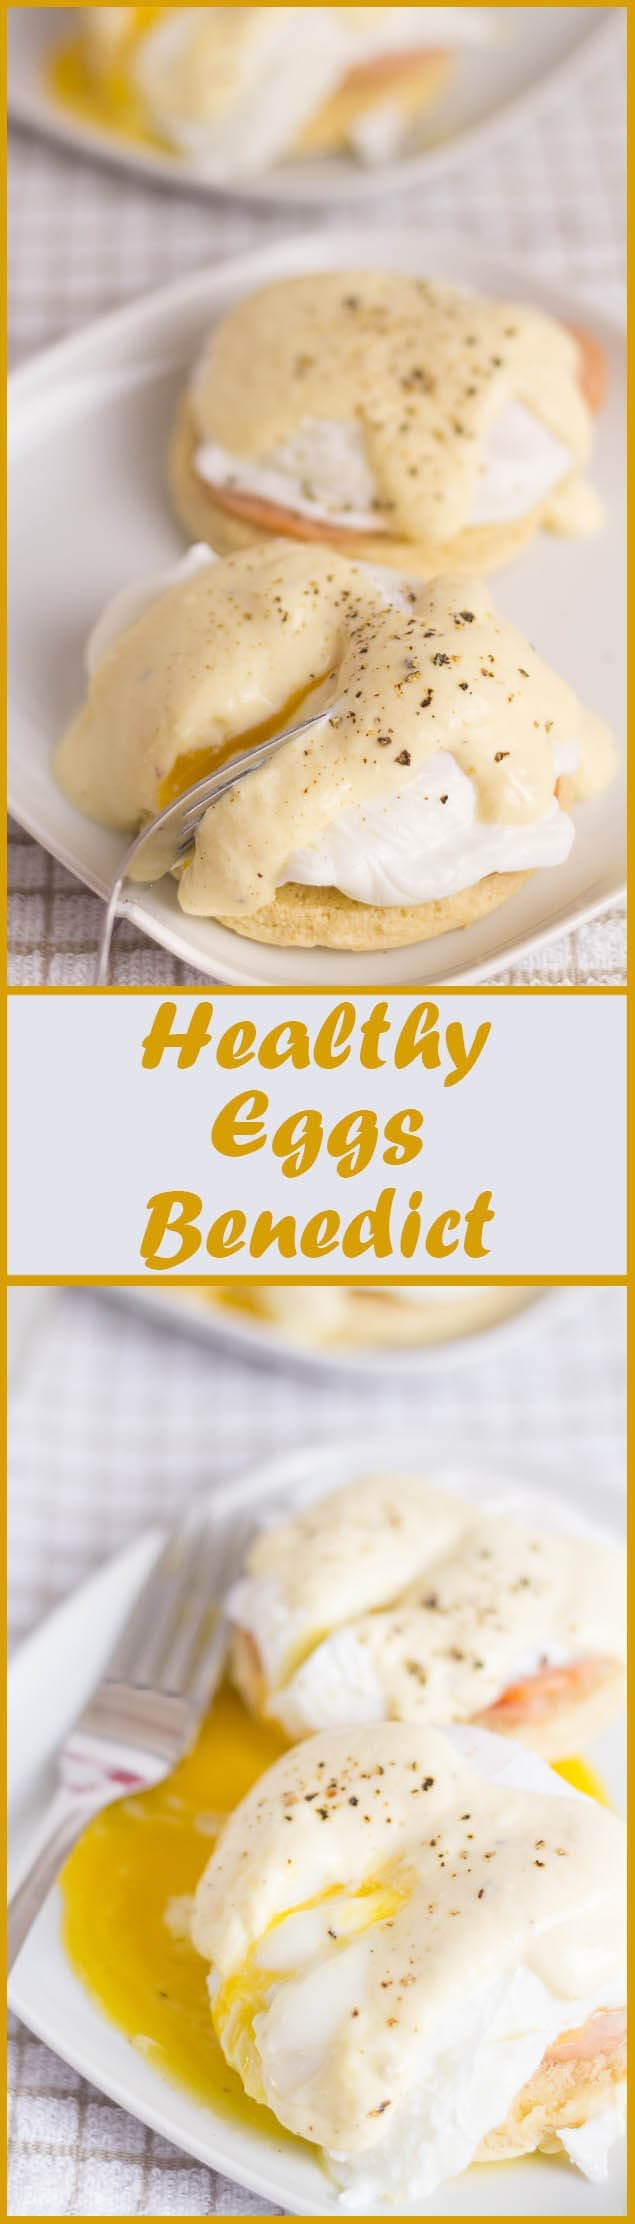 Healthy eggs benedict. Here, the delicious and classic eggs benedict has been given a healthy makeover. A creamy yogurt hollandaise sauce replaces butter with lean turkey bacon and home made lower fat English muffins.